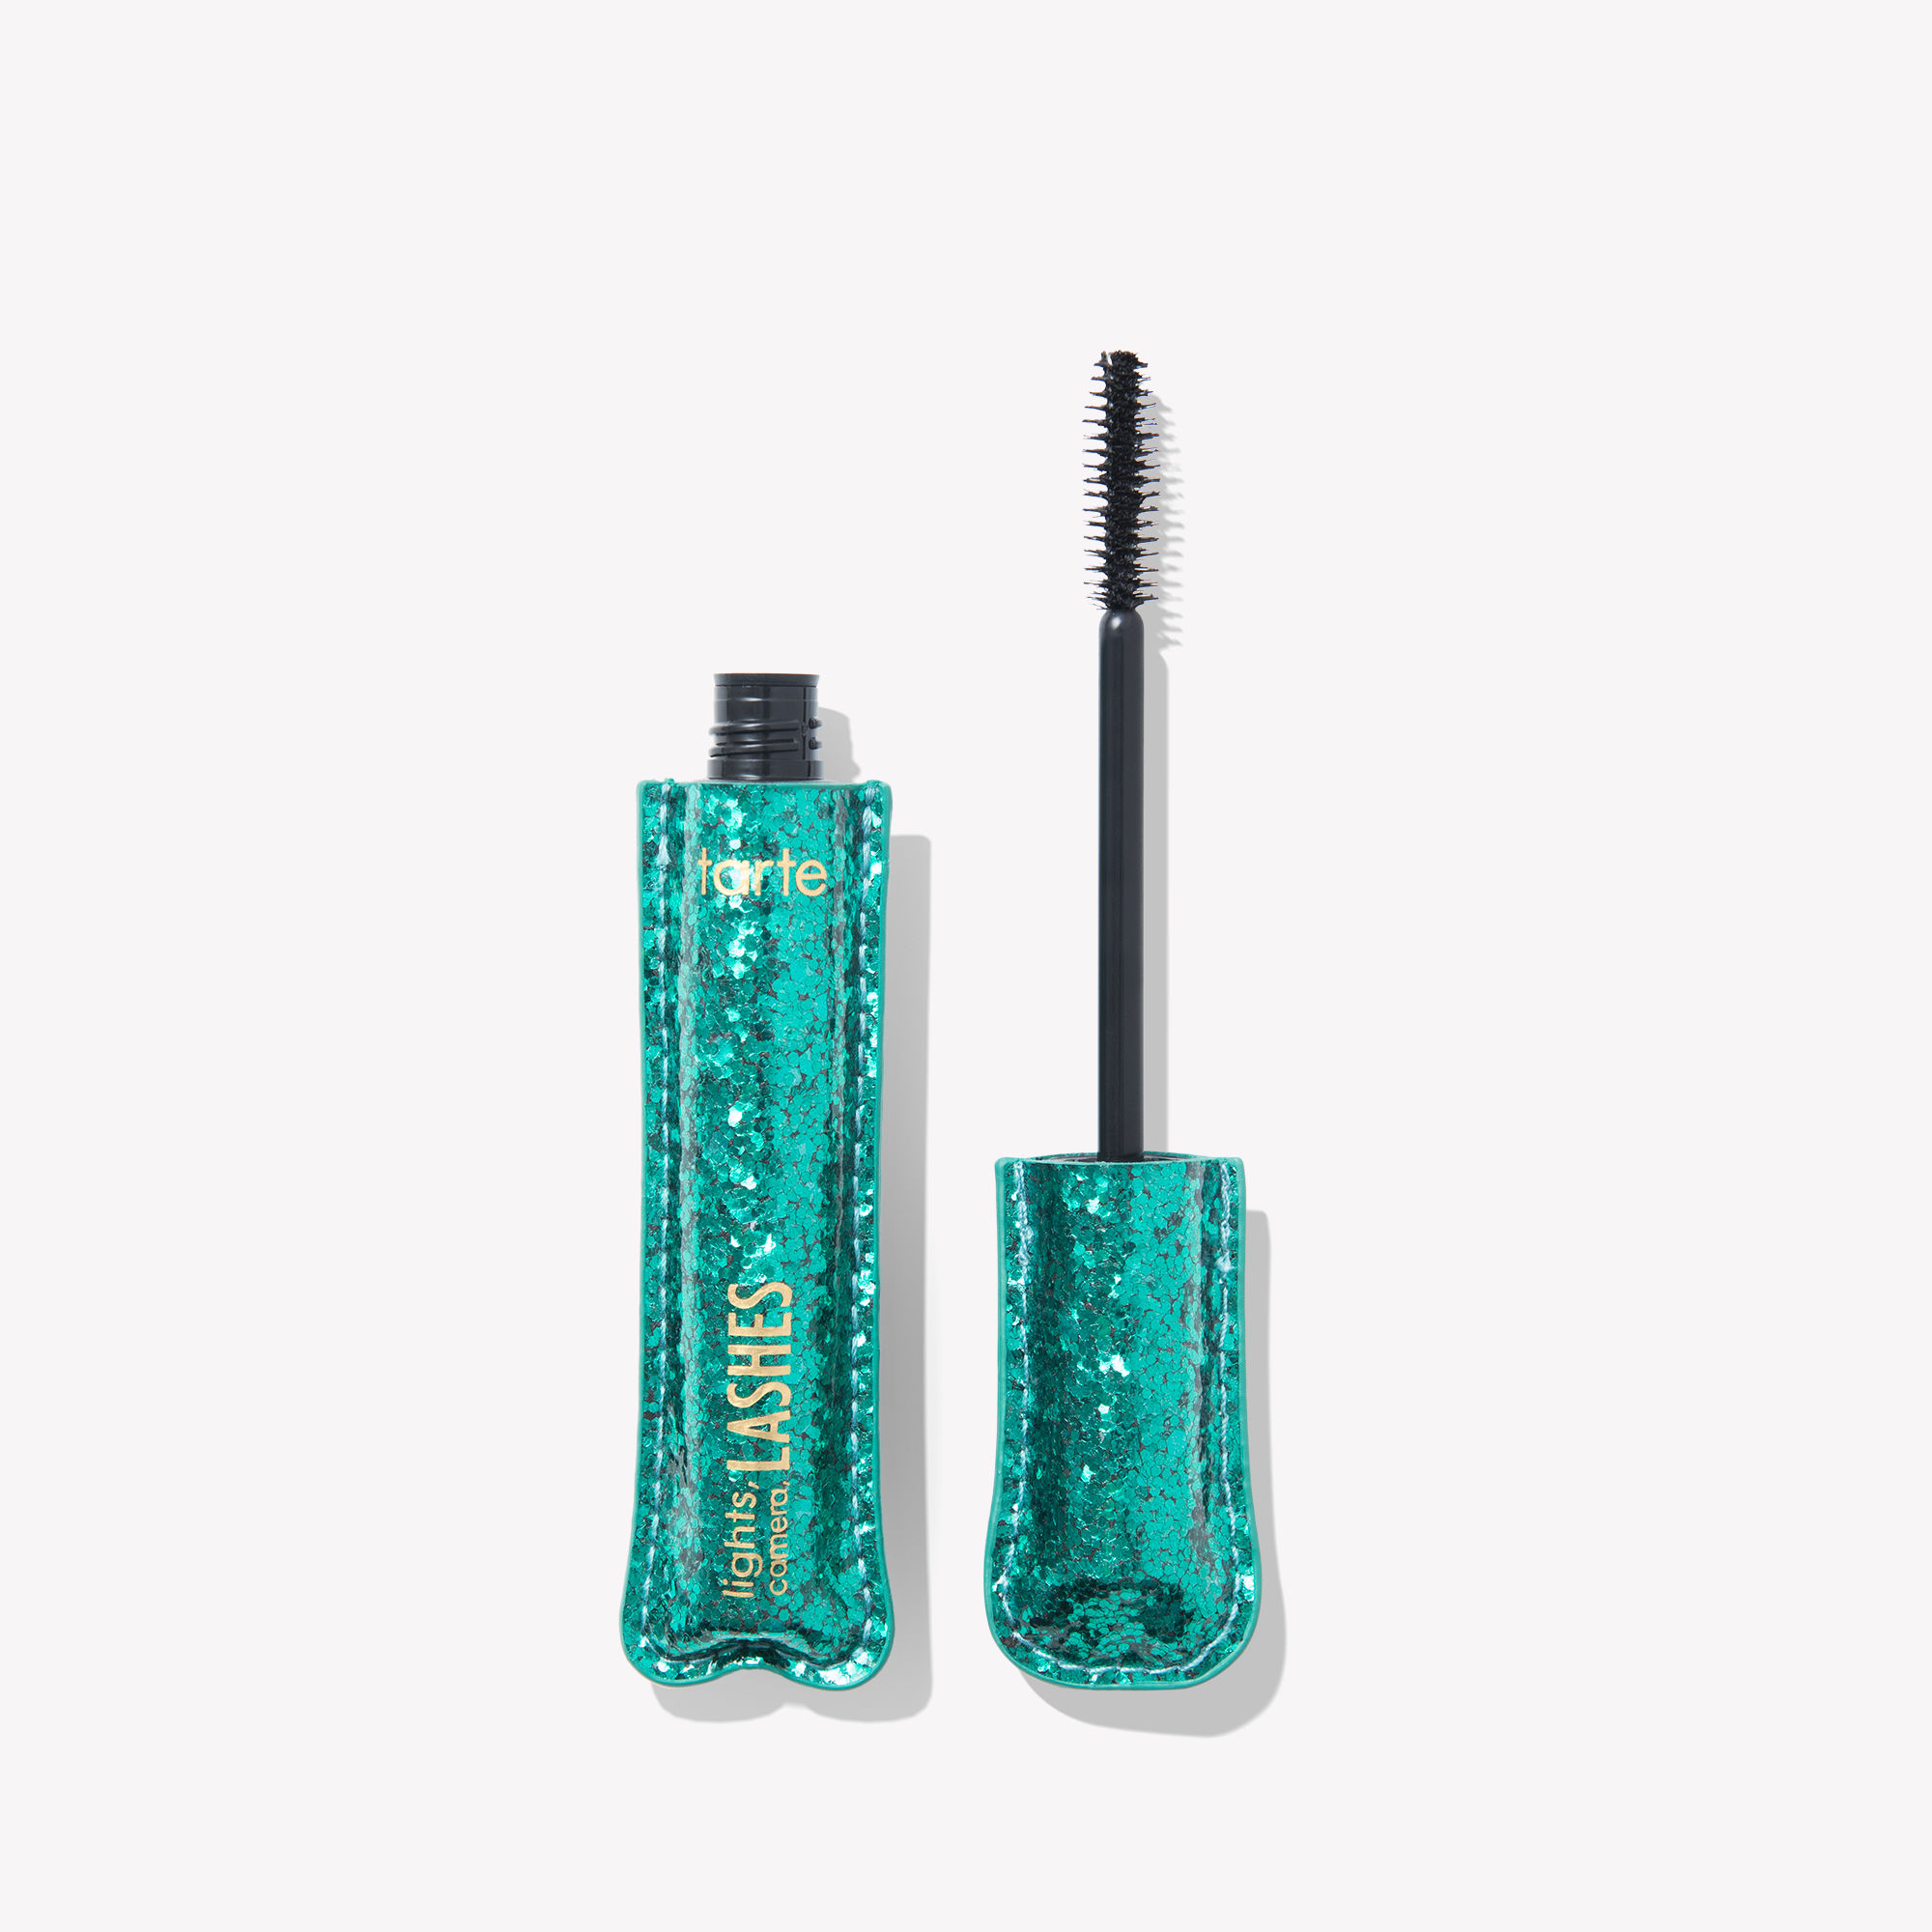 tarte Limited Edition Lights, Camera, Lashes 4-in-1 Mascara - Be A Mermaid & Make Waves Collection Black 0.24 oz/ 7 mL